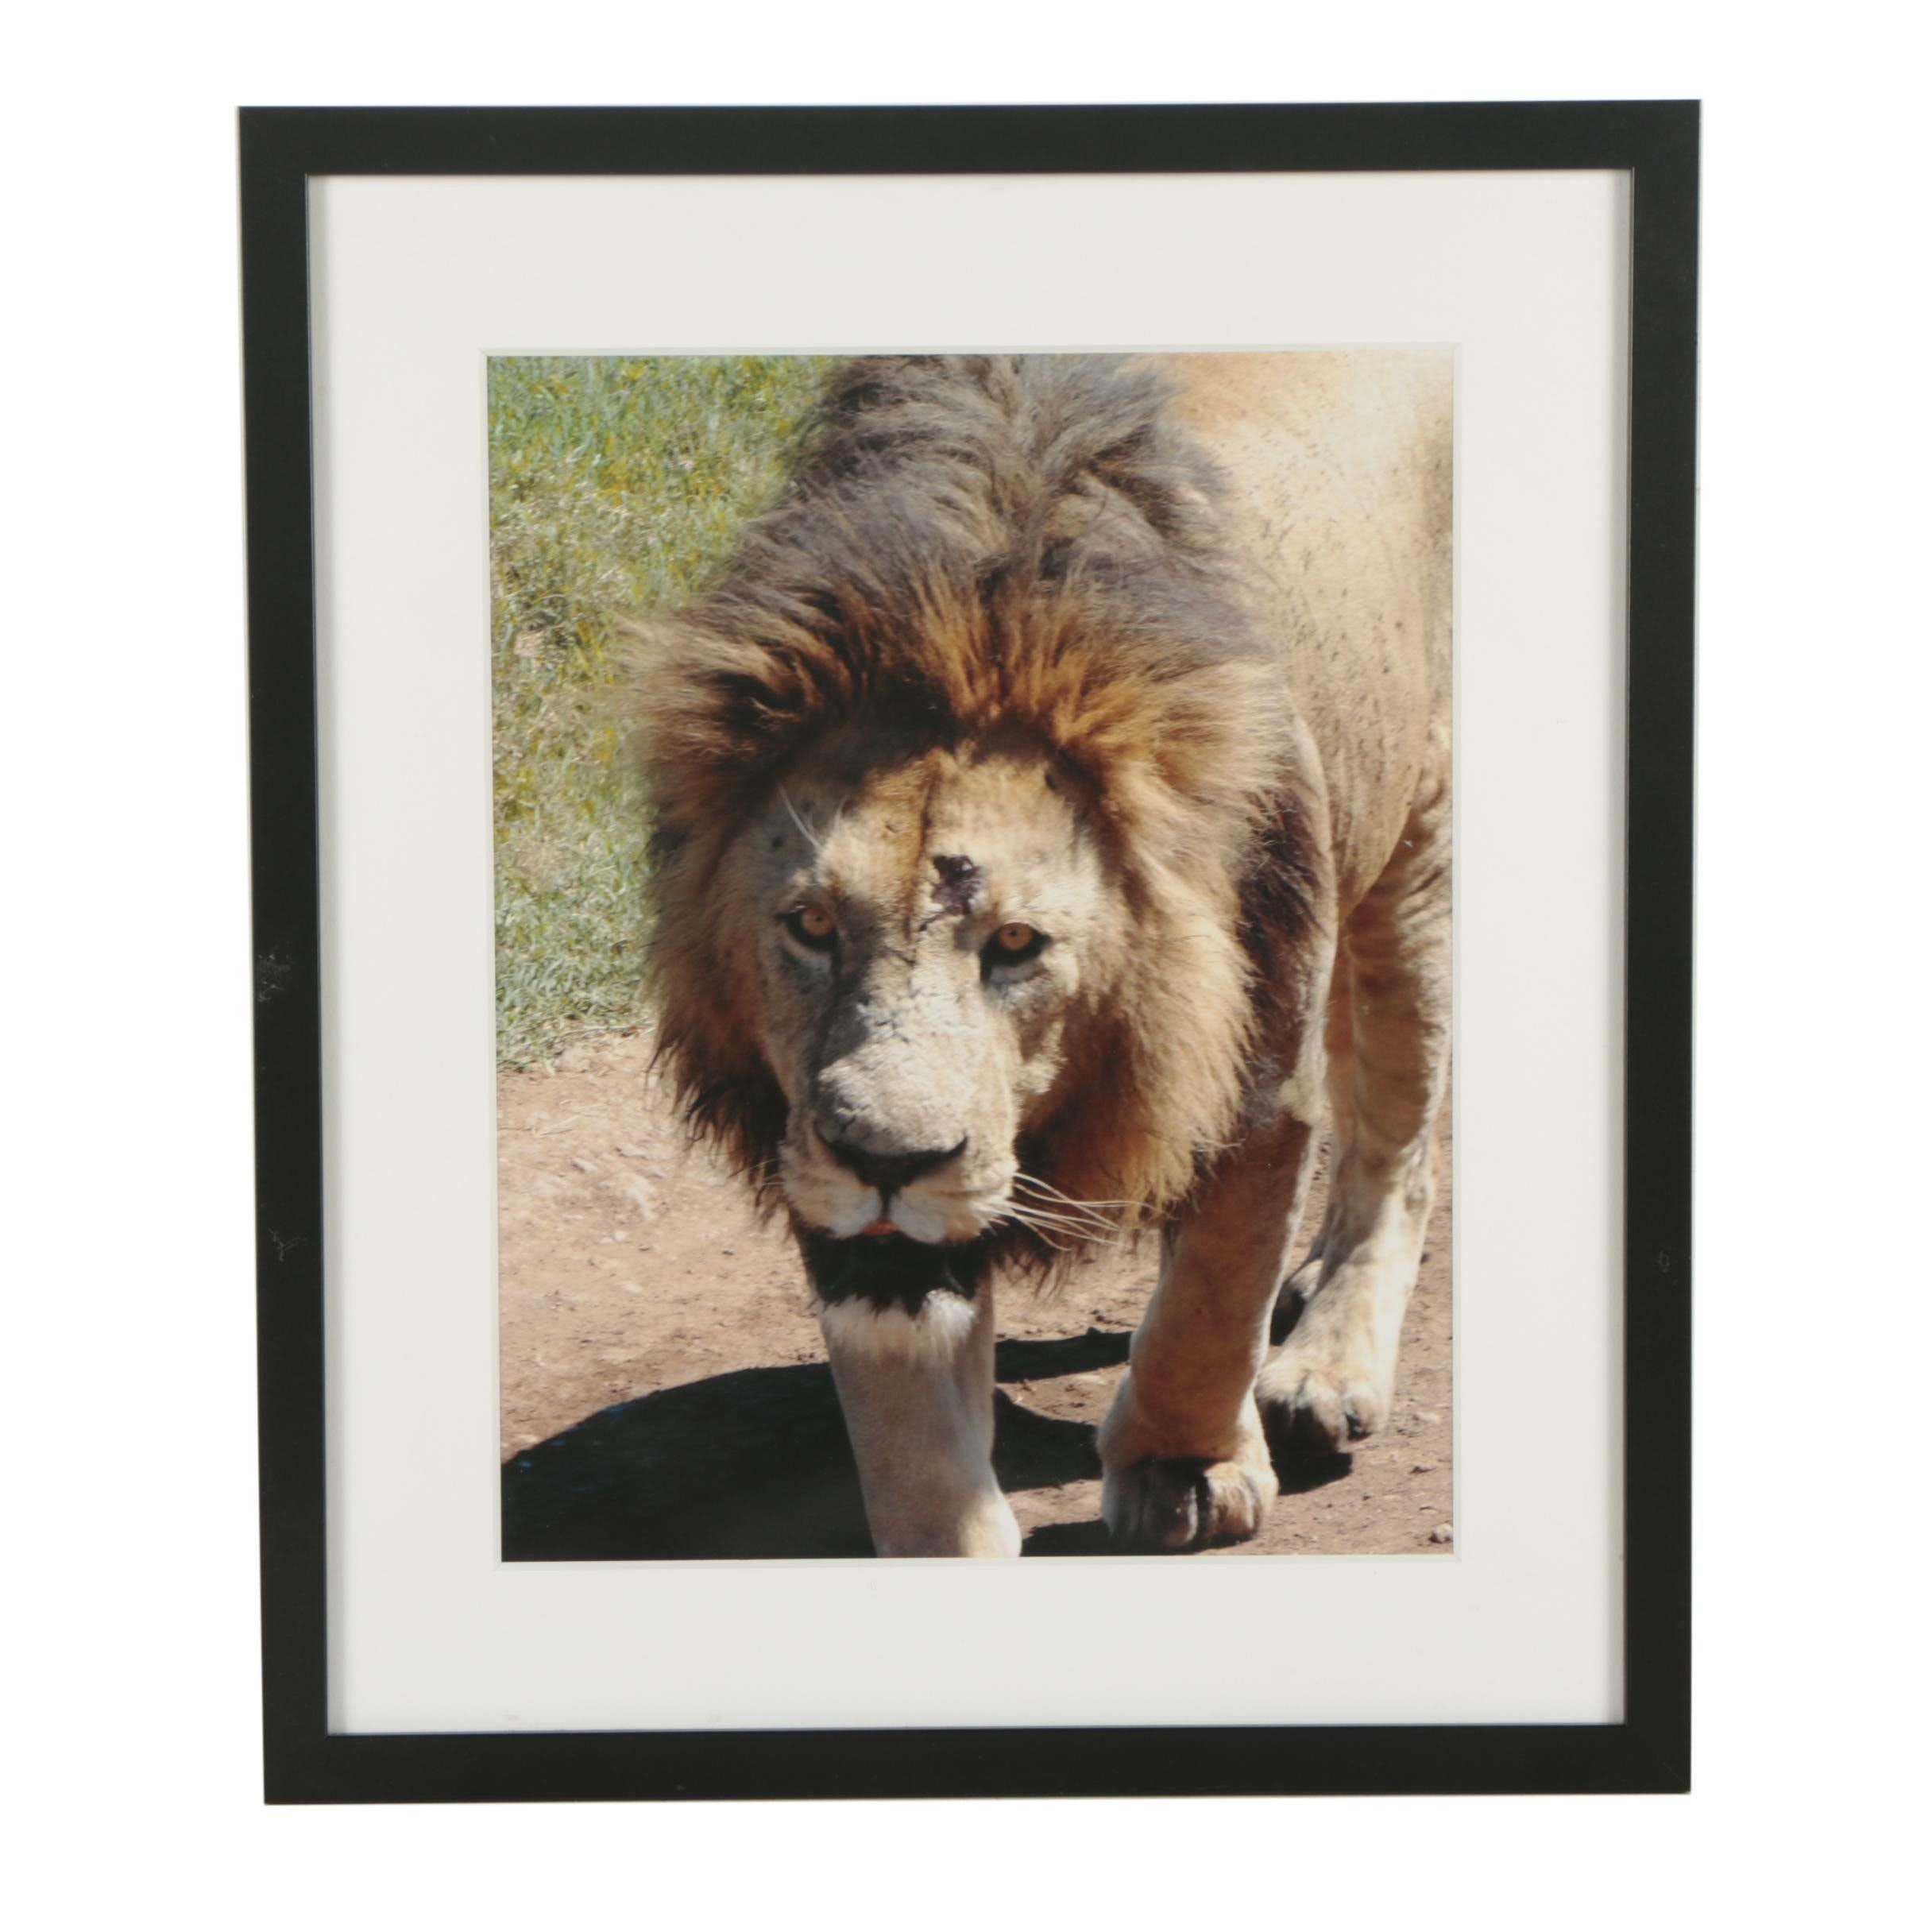 Contemporary Color Photograph of a Lion